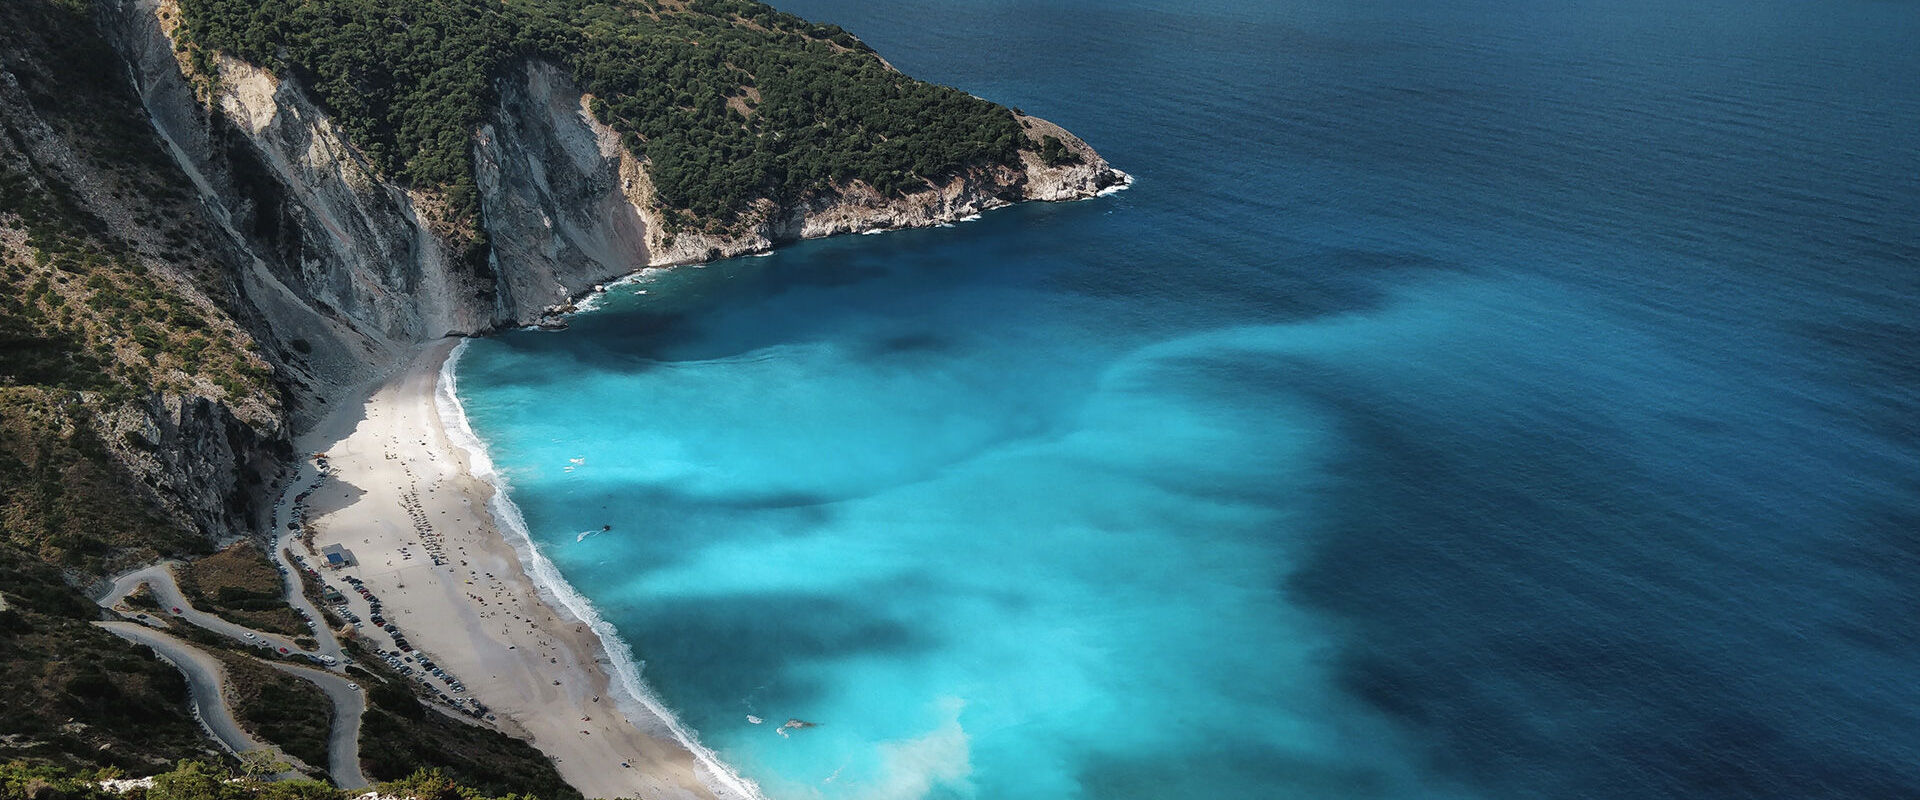 Amazing blue waters of Myrtos beach in Kefalonia